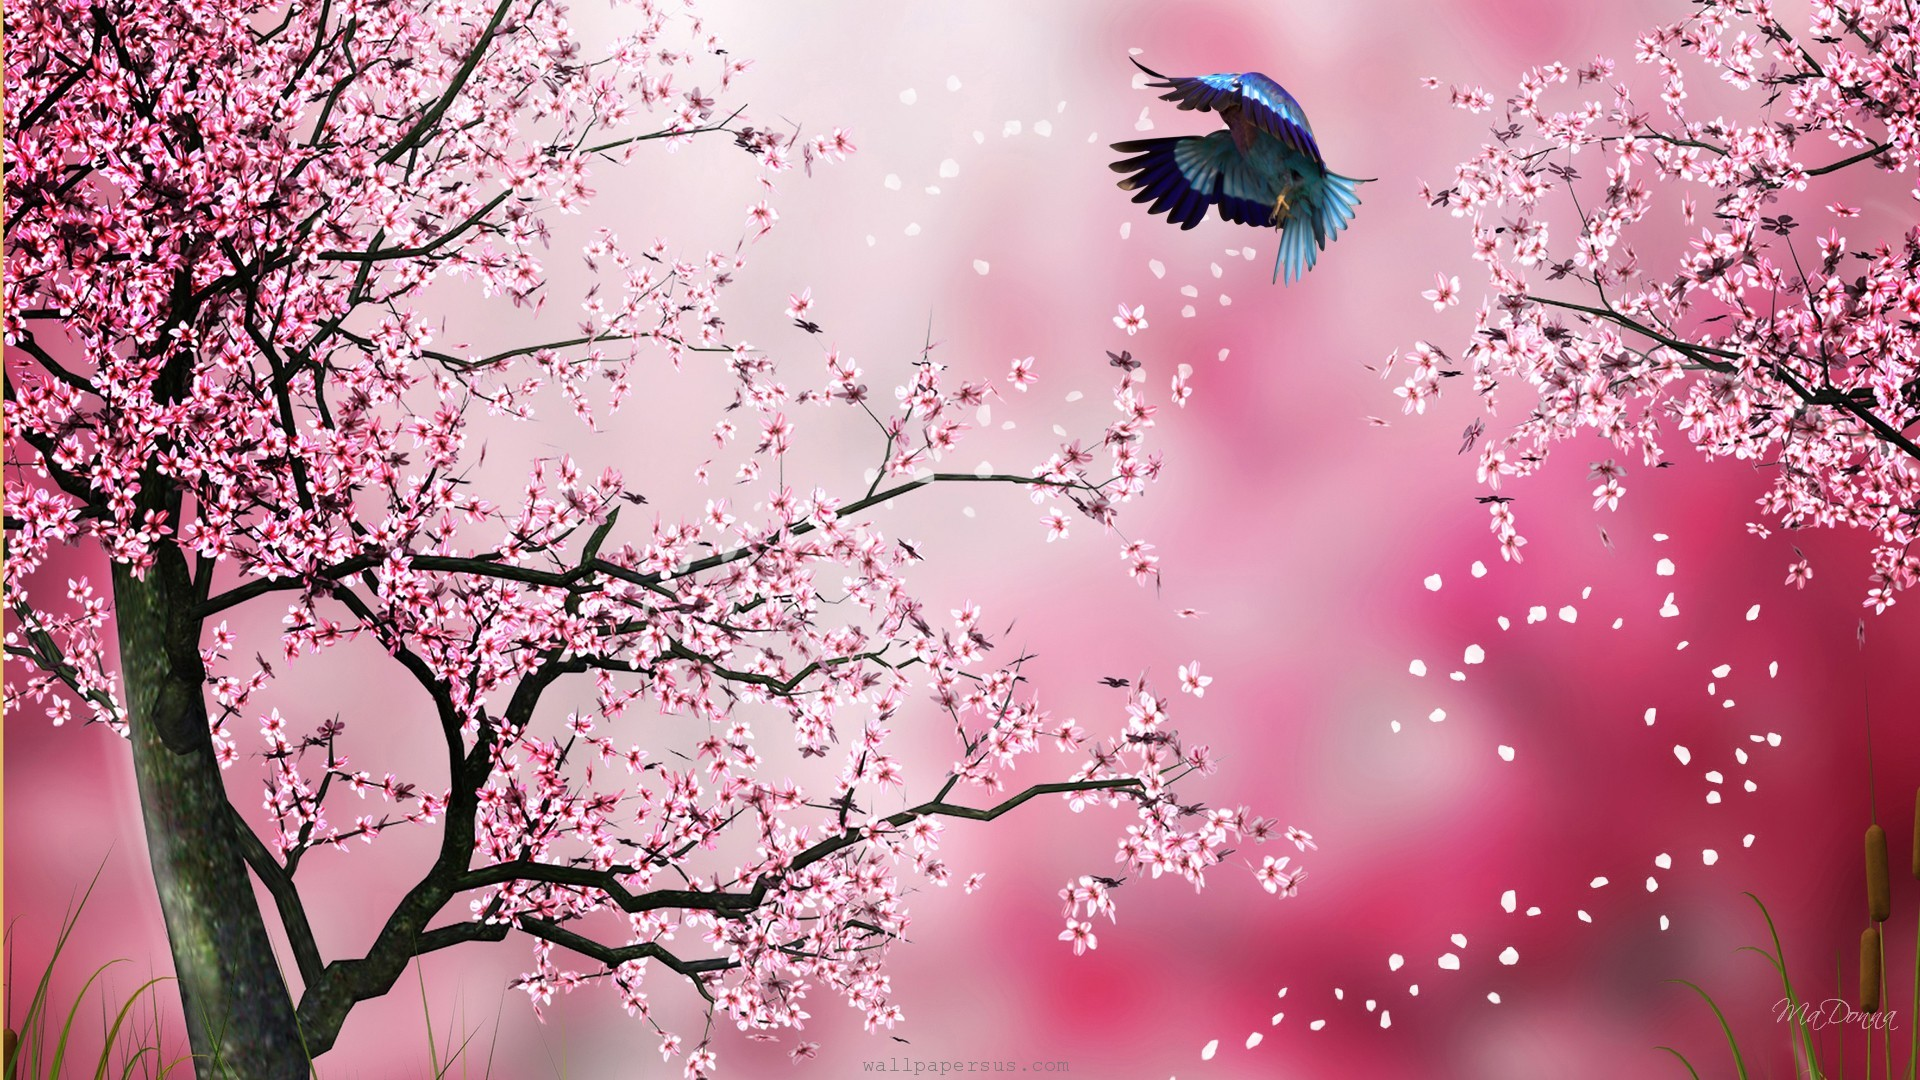 Wallpapers Cherry Blossom Cherry Blossom Drawing Wallpaper At Getdrawings Free For